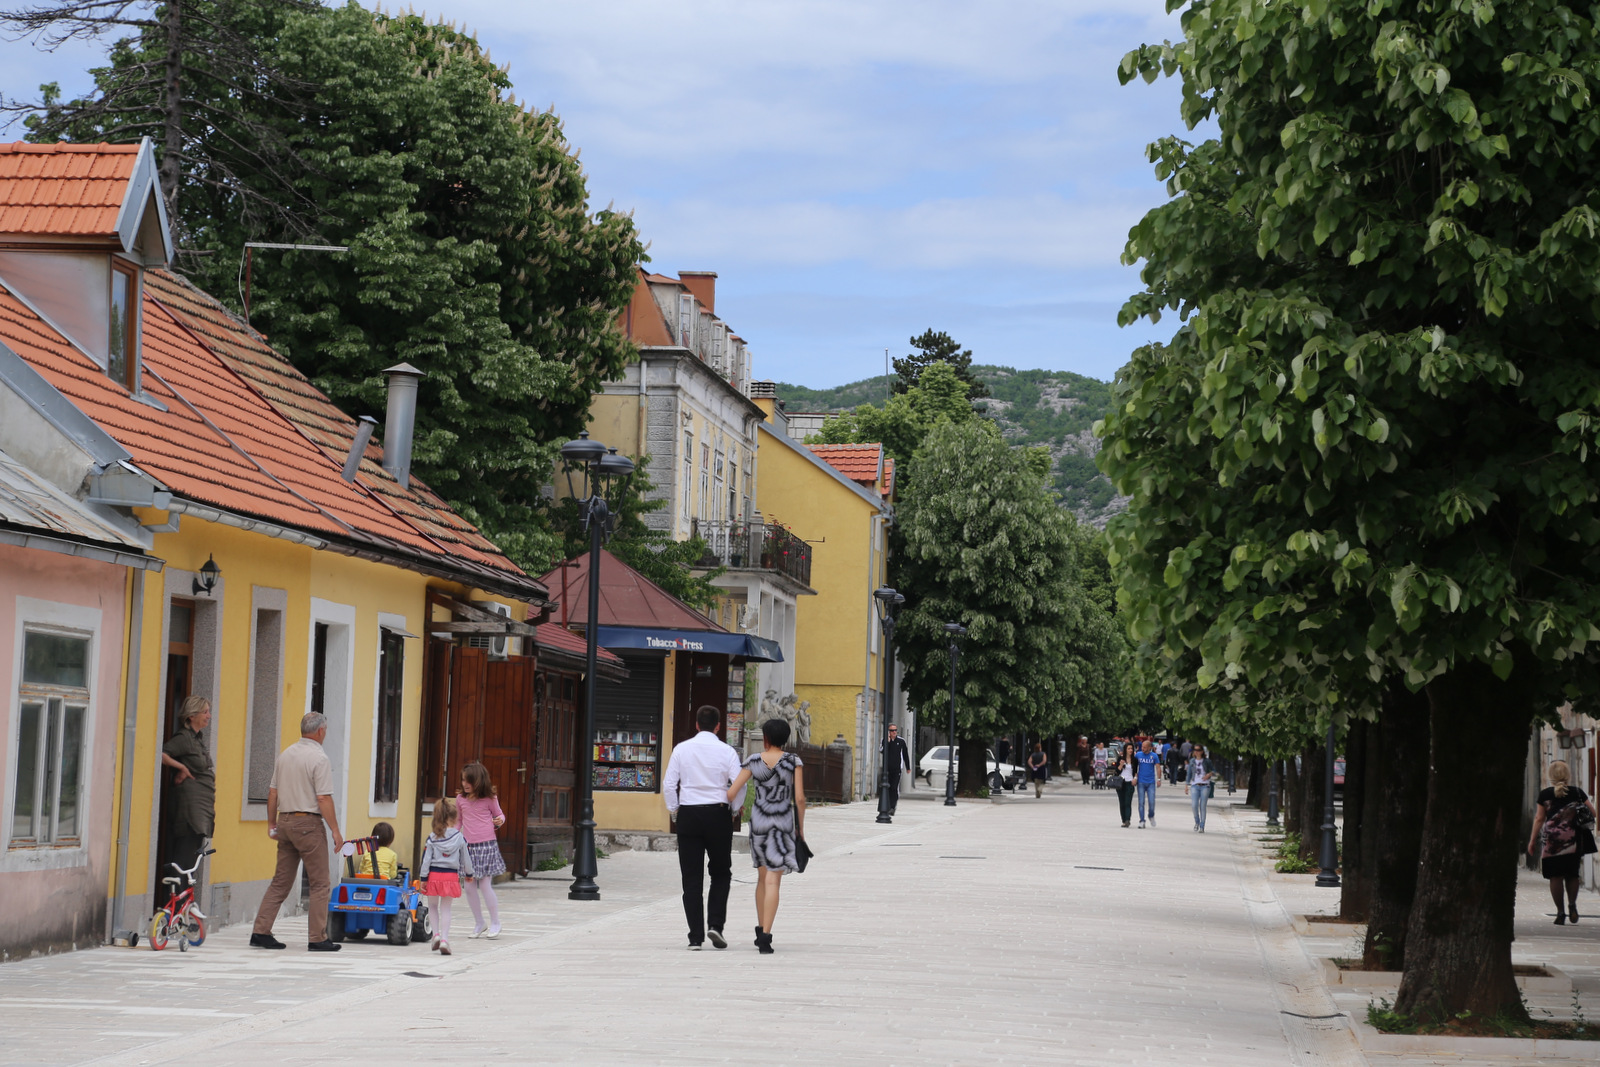 Cetinje, the old capital of Montenegro